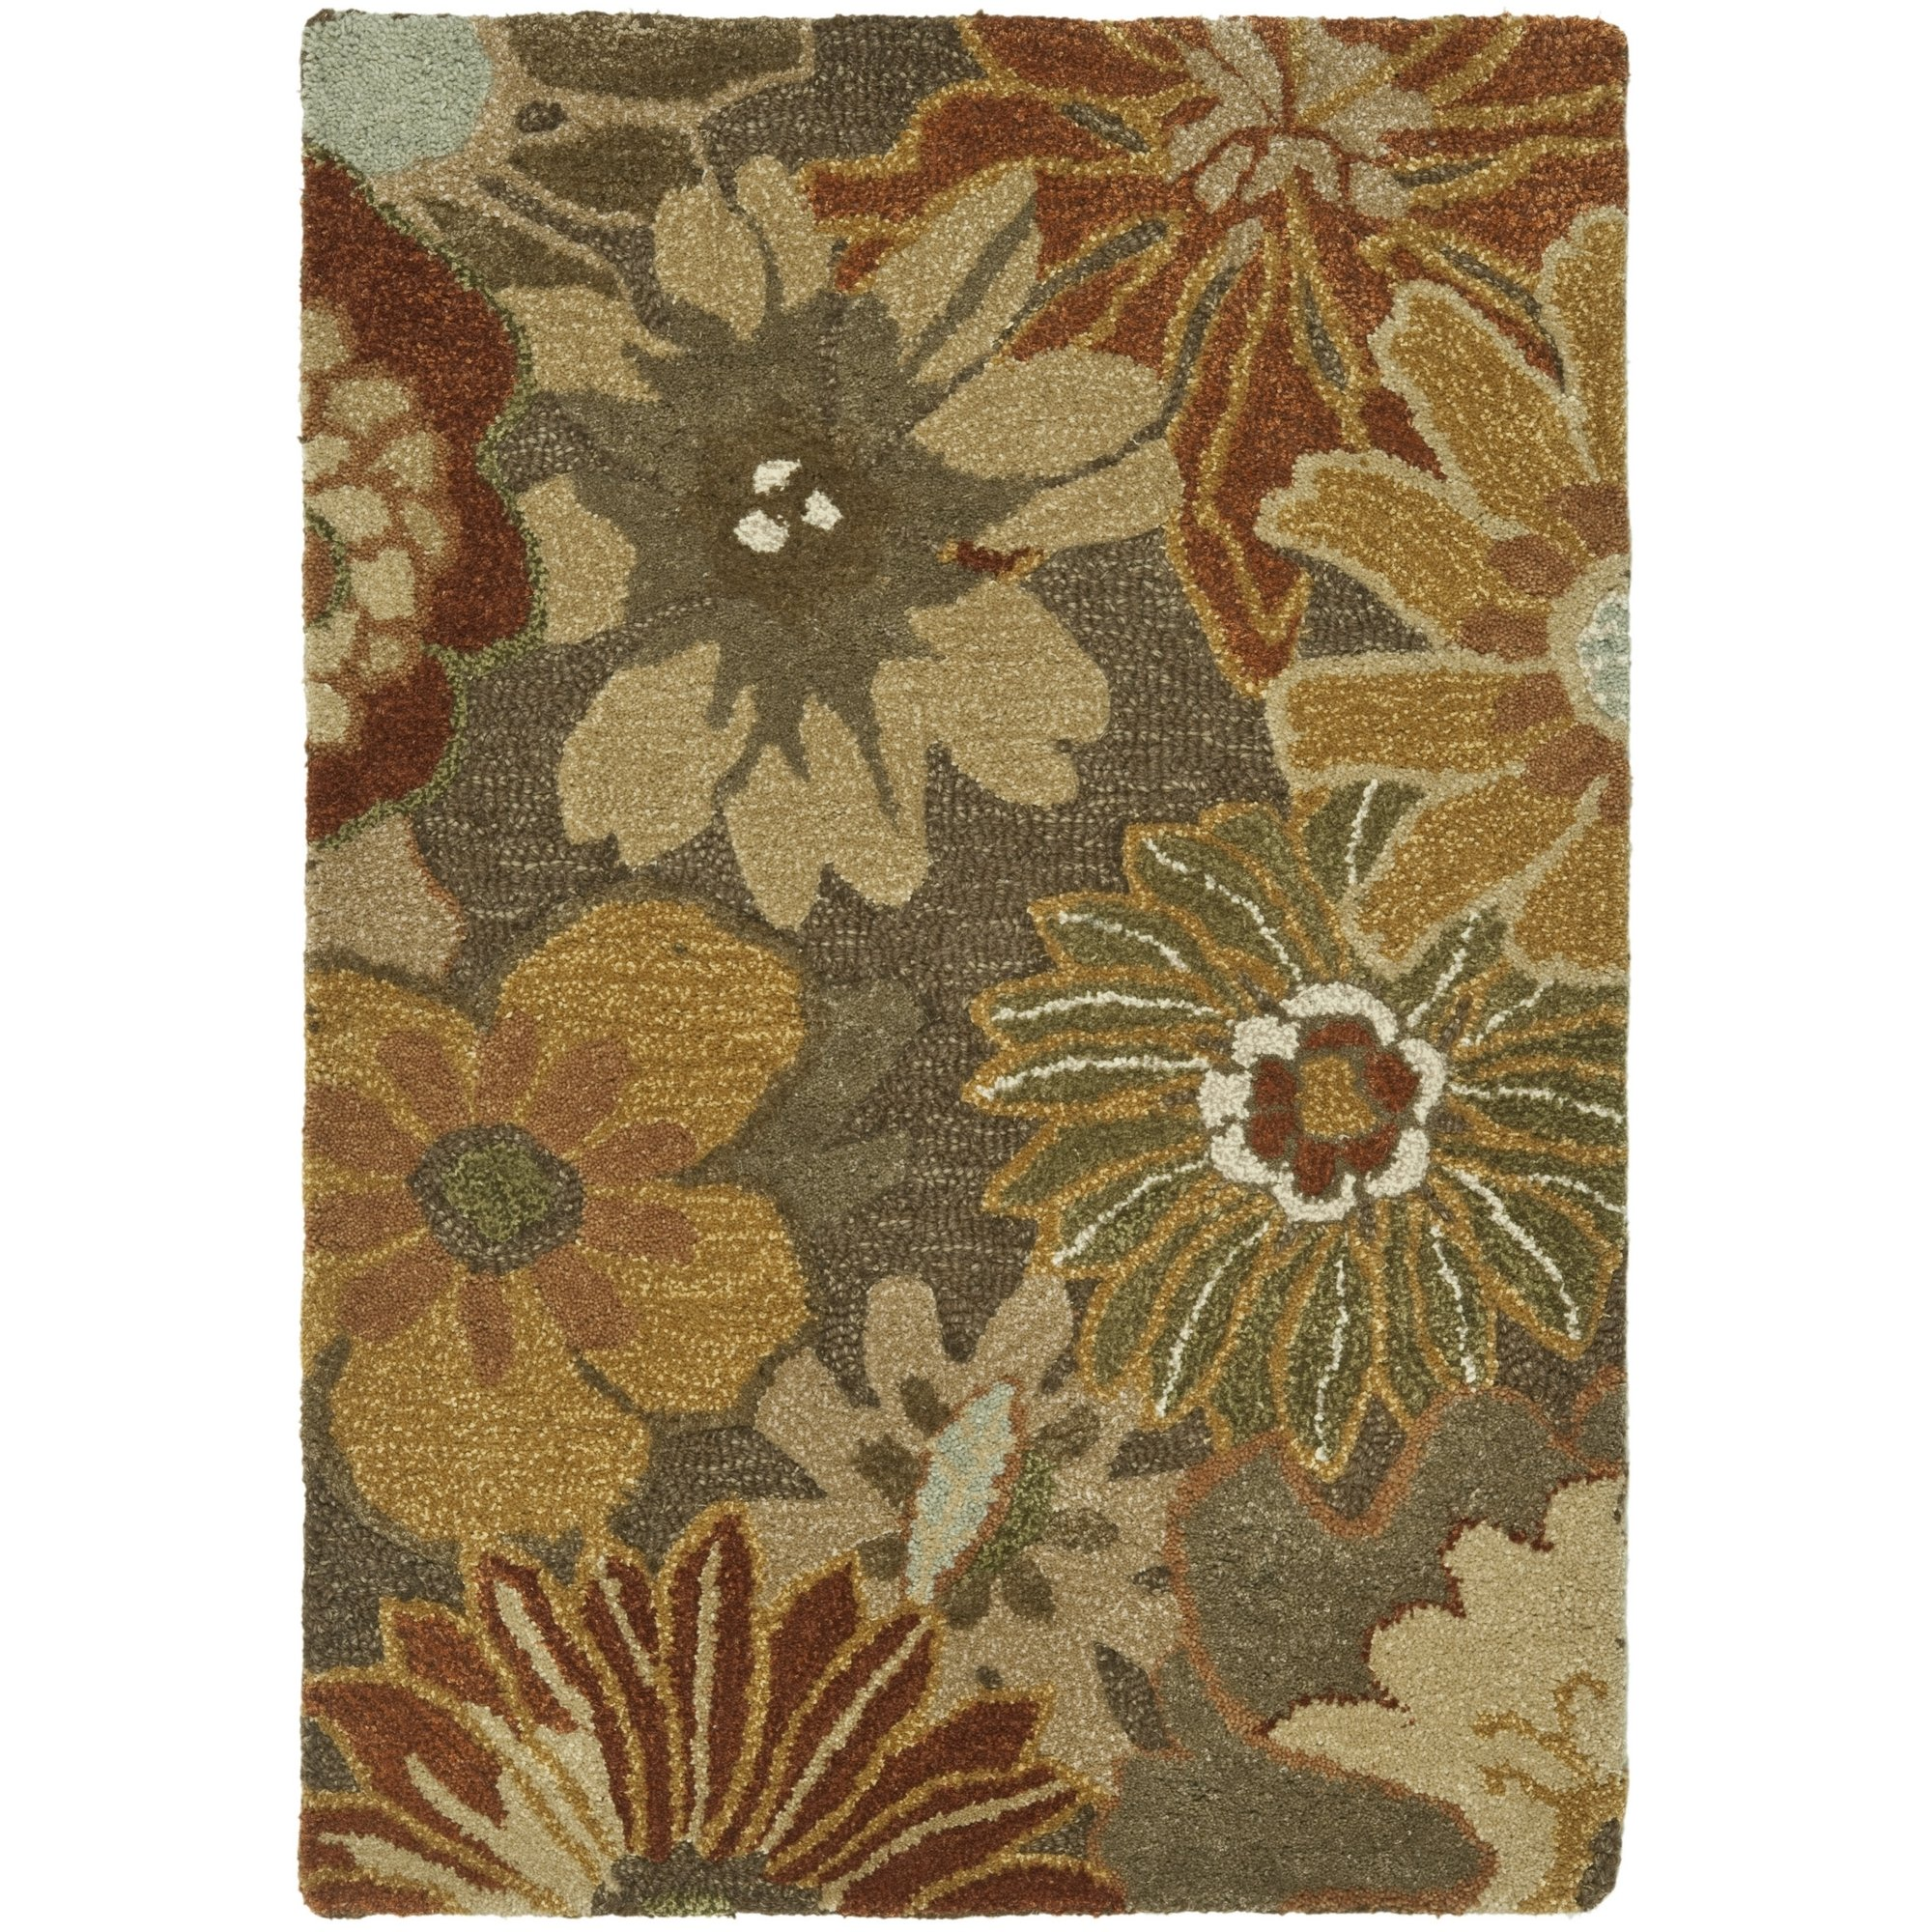 Safavieh Soho Collection SOH820A Handmade Brown and Multi Premium Wool Area Rug (2' x 3') by Safavieh